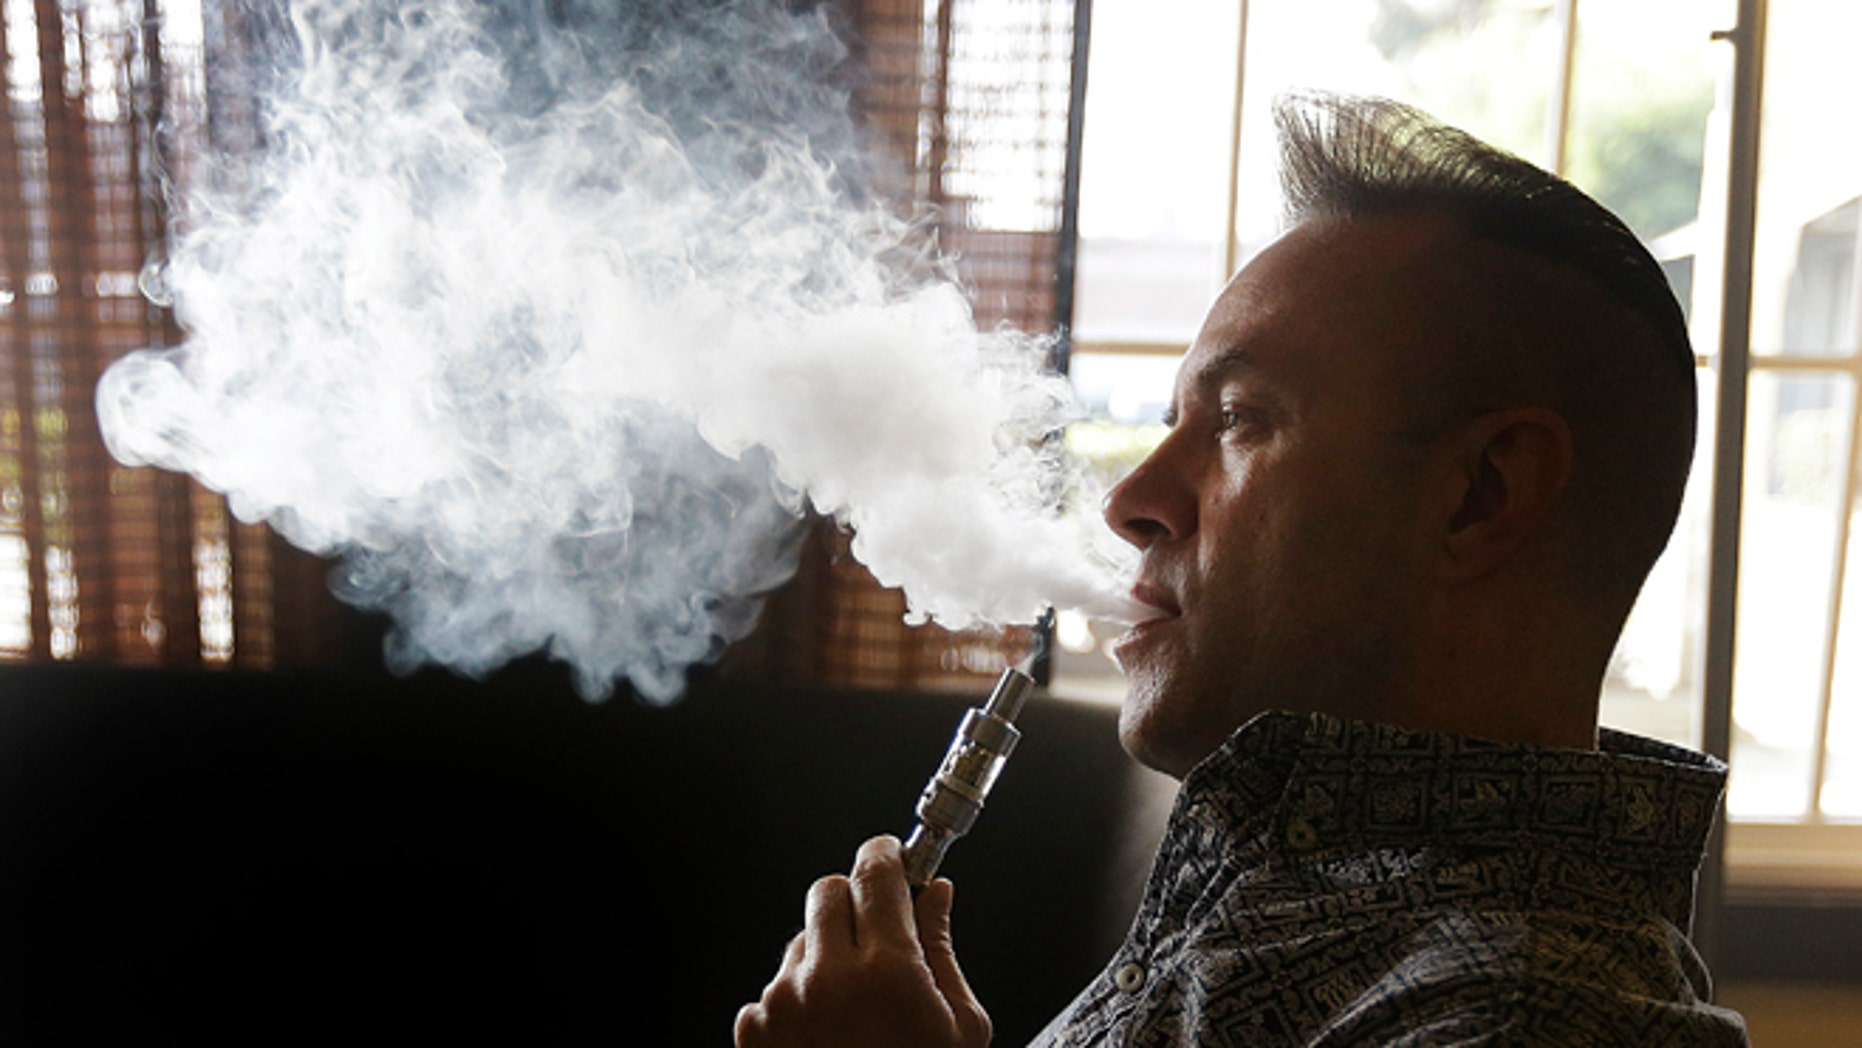 "Geoff Braithwaite, owner of Tasty Vapor, exhales vapor after using an electronic cigarette Wednesday, Jan. 28, 2015, in Oakland, Calif. California health officials on Wednesday declared electronic cigarettes a health threat that should be strictly regulated like tobacco products, joining other states and health advocates across the U.S. in seeking tighter controls as ""vaping"" grows in popularity. The California Department of Public Health report says e-cigarettes emit cancer-causing chemicals and get users hooked on nicotine but acknowledges that more research needs to be done to determine the immediate and long-term health effects. (AP Photo/Ben Margot)"